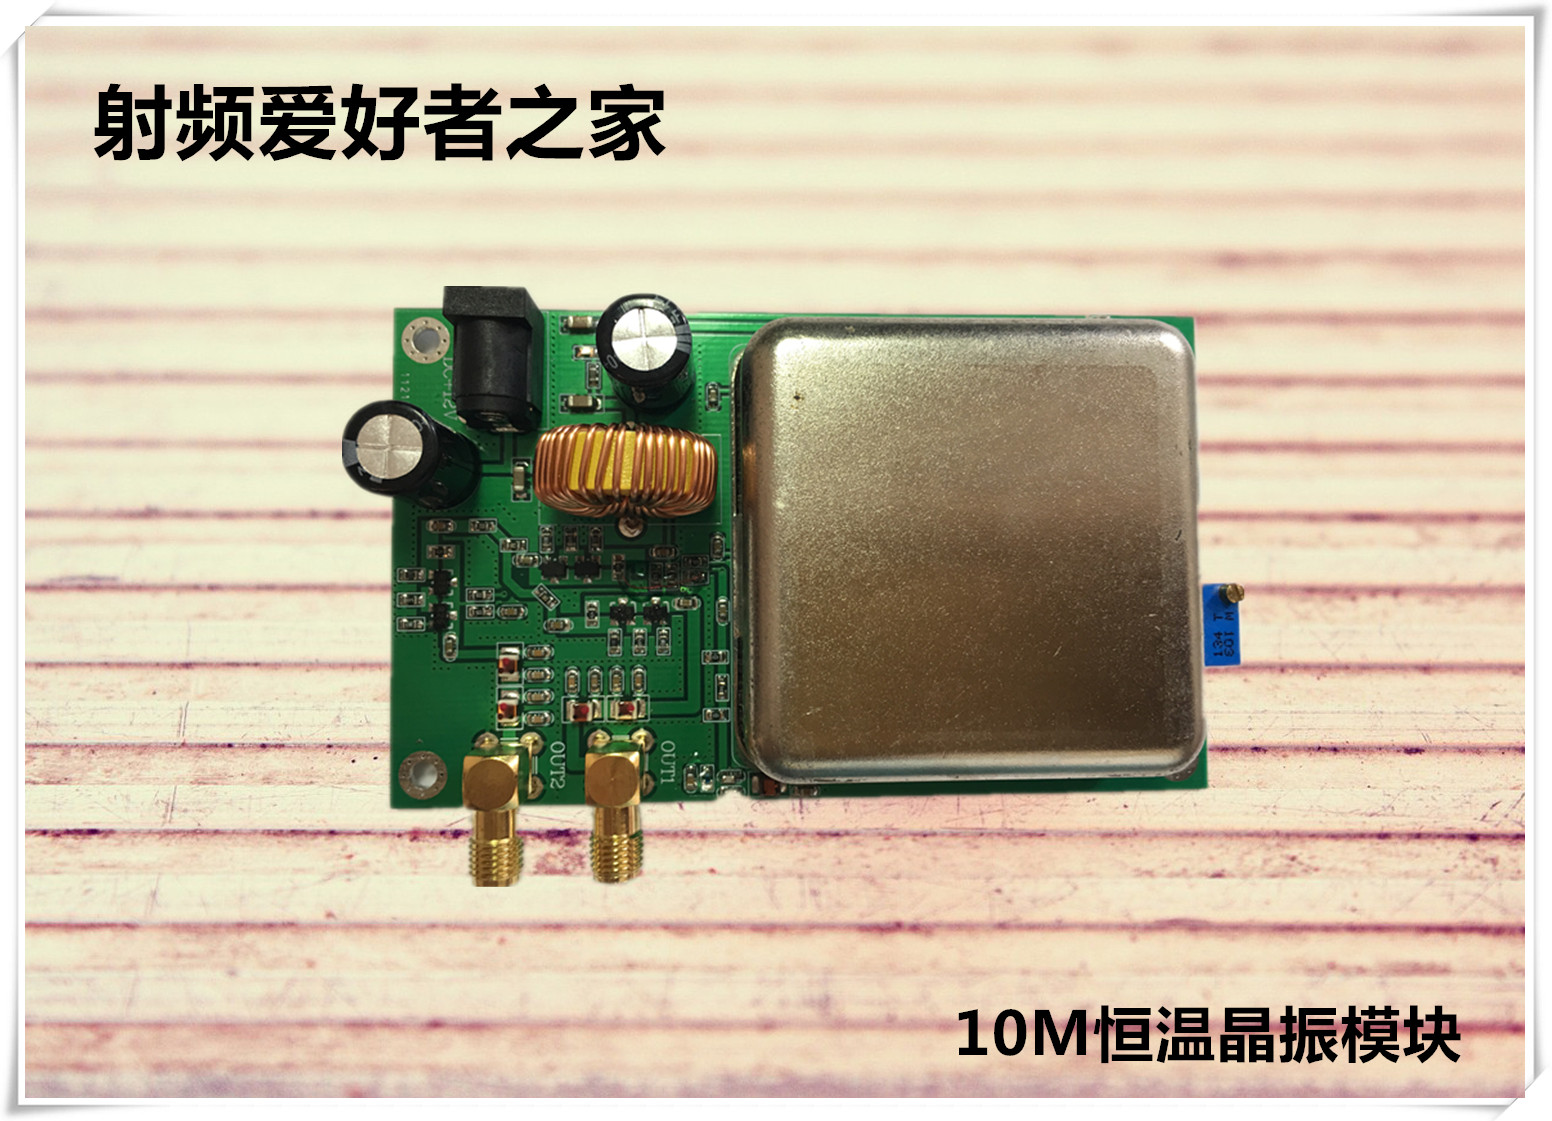 10MHz OCXO Constant Temperature Crystal Oscillator Clock Frequency Reference High Stability tracksuit